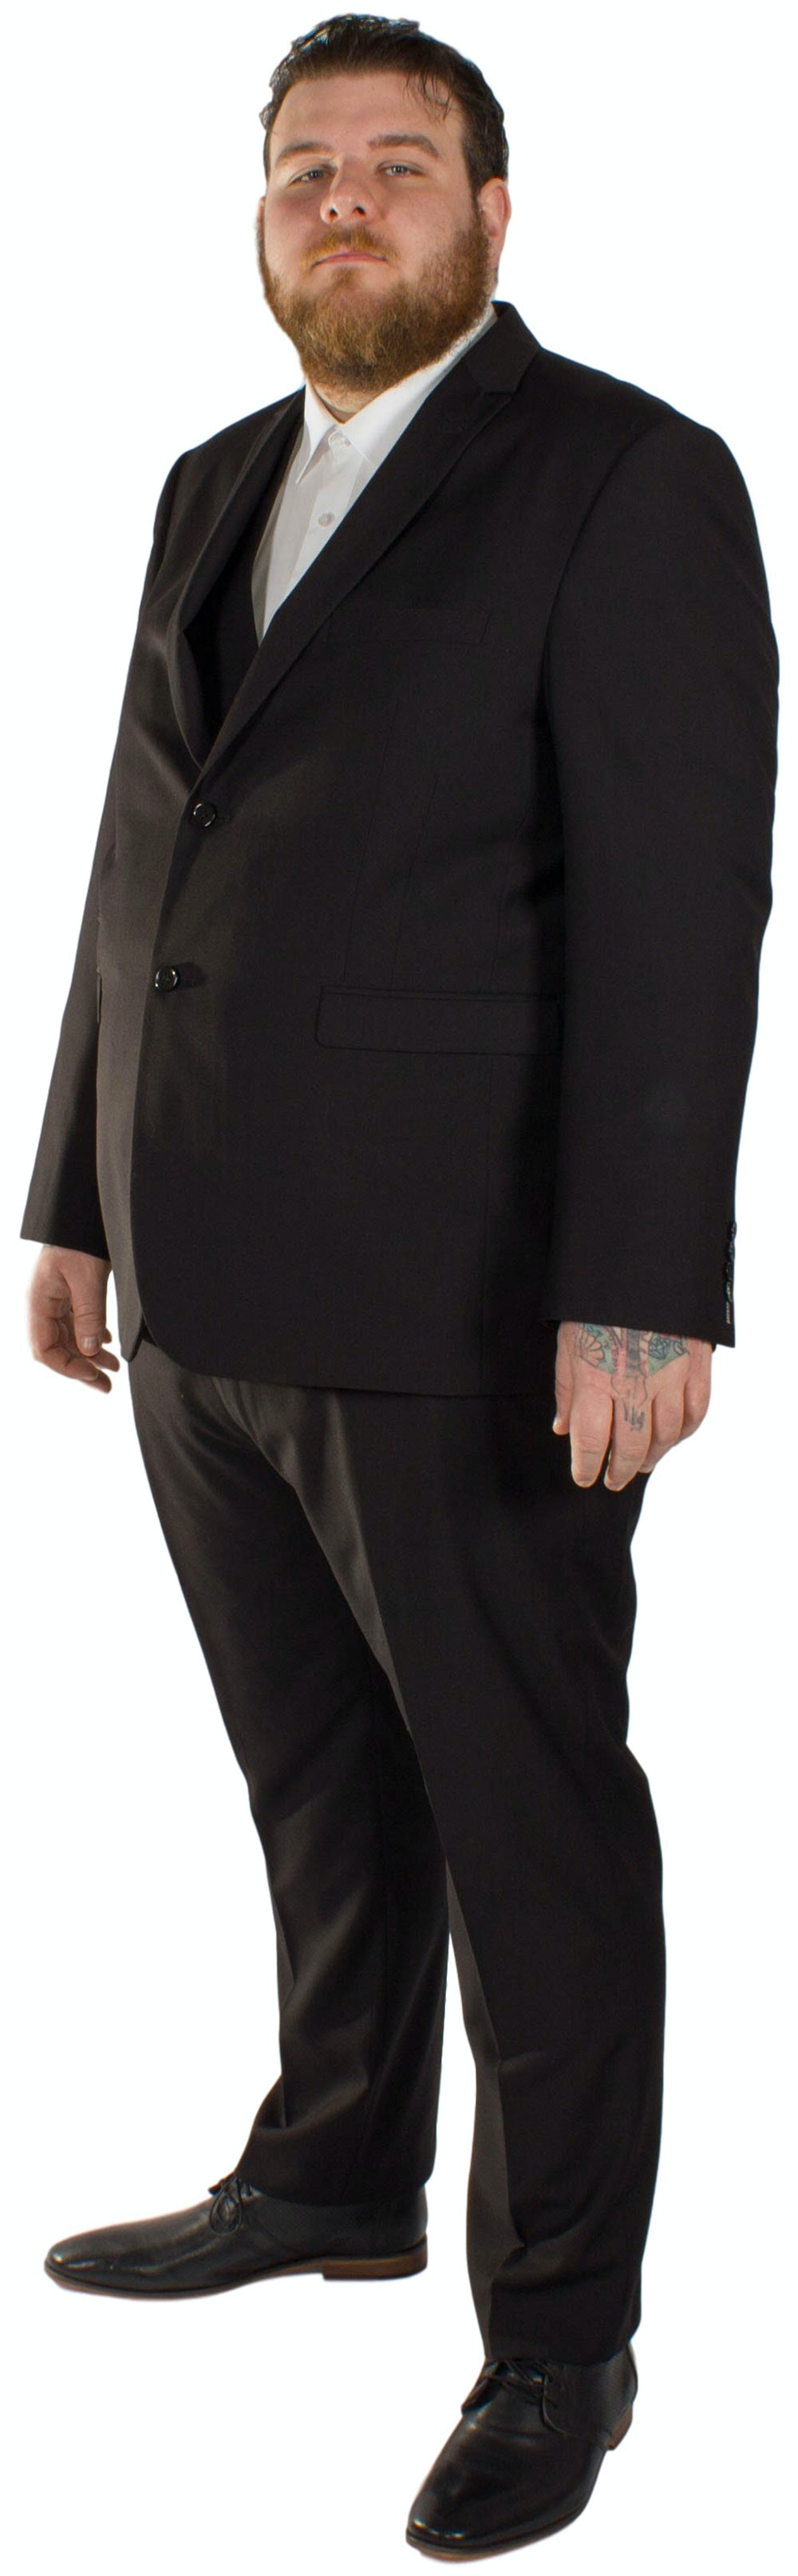 Skopes Madrid Superfine Twill 3 Piece Suit- Black